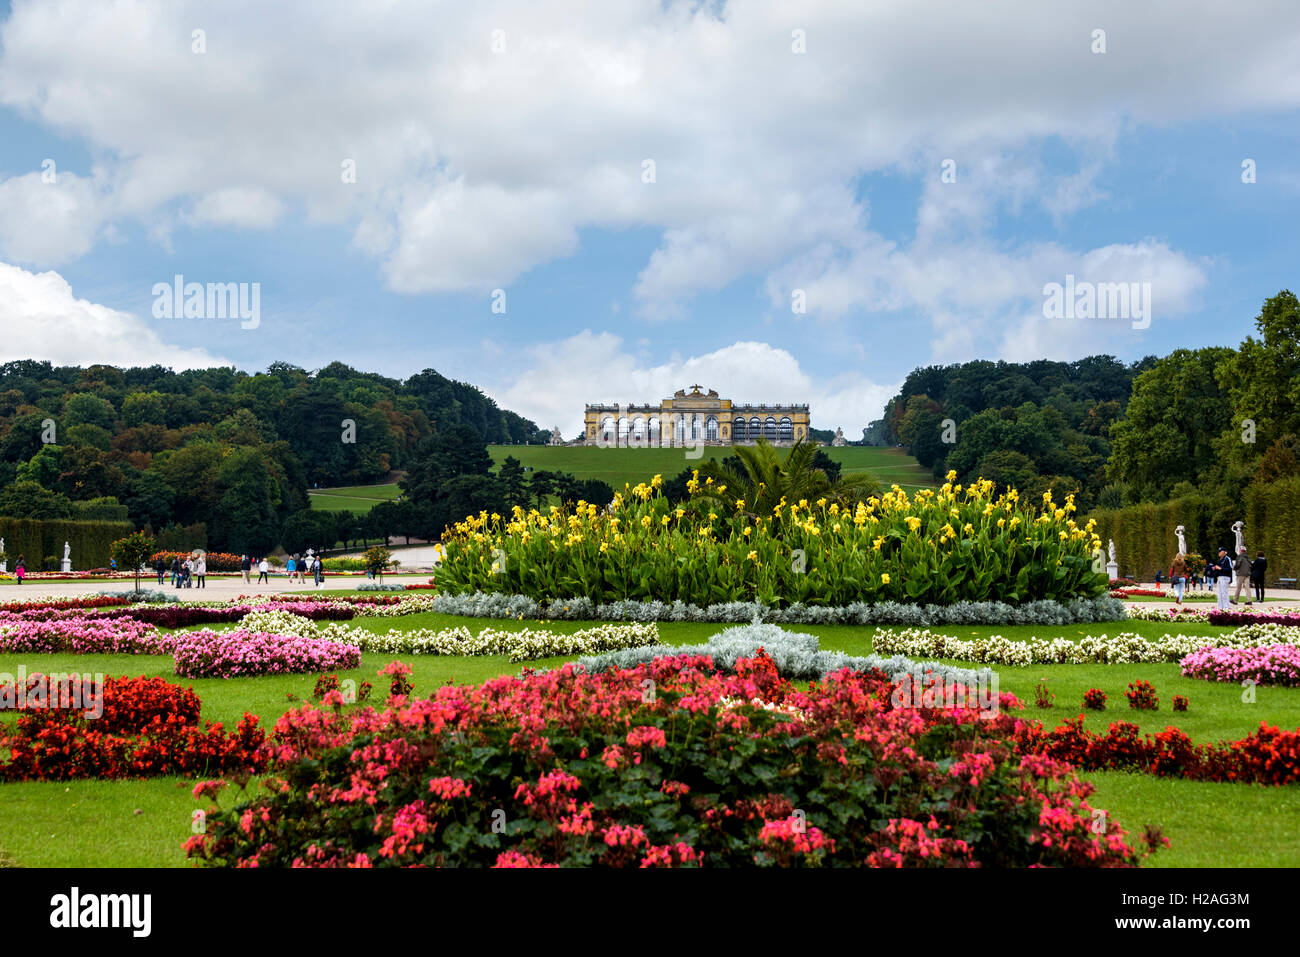 Gloriette in the Schonbrunn palace gardens. - Stock Image